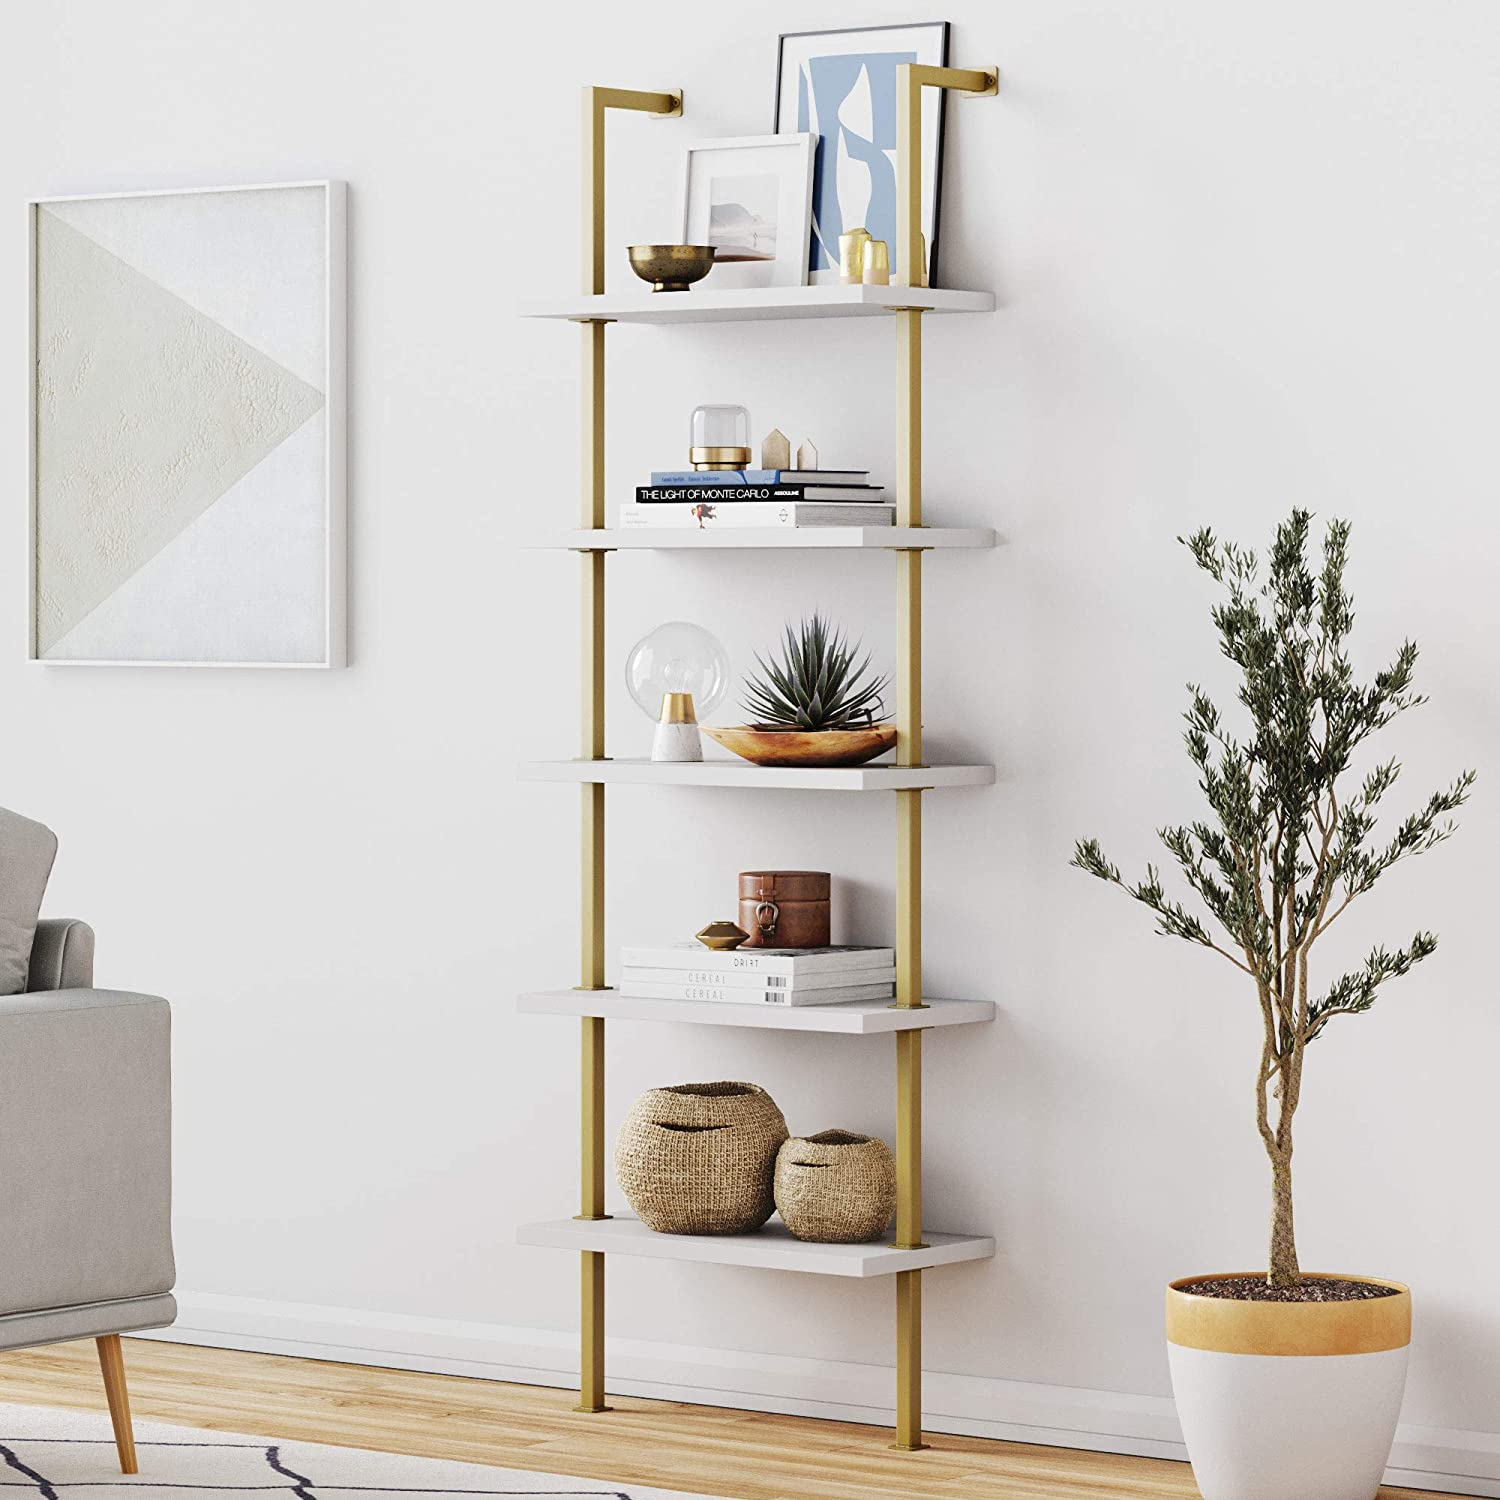 Nathan James 66001 Theo 5-Shelf Ladder Bookcase with Brass Metal Frame, White/Gold